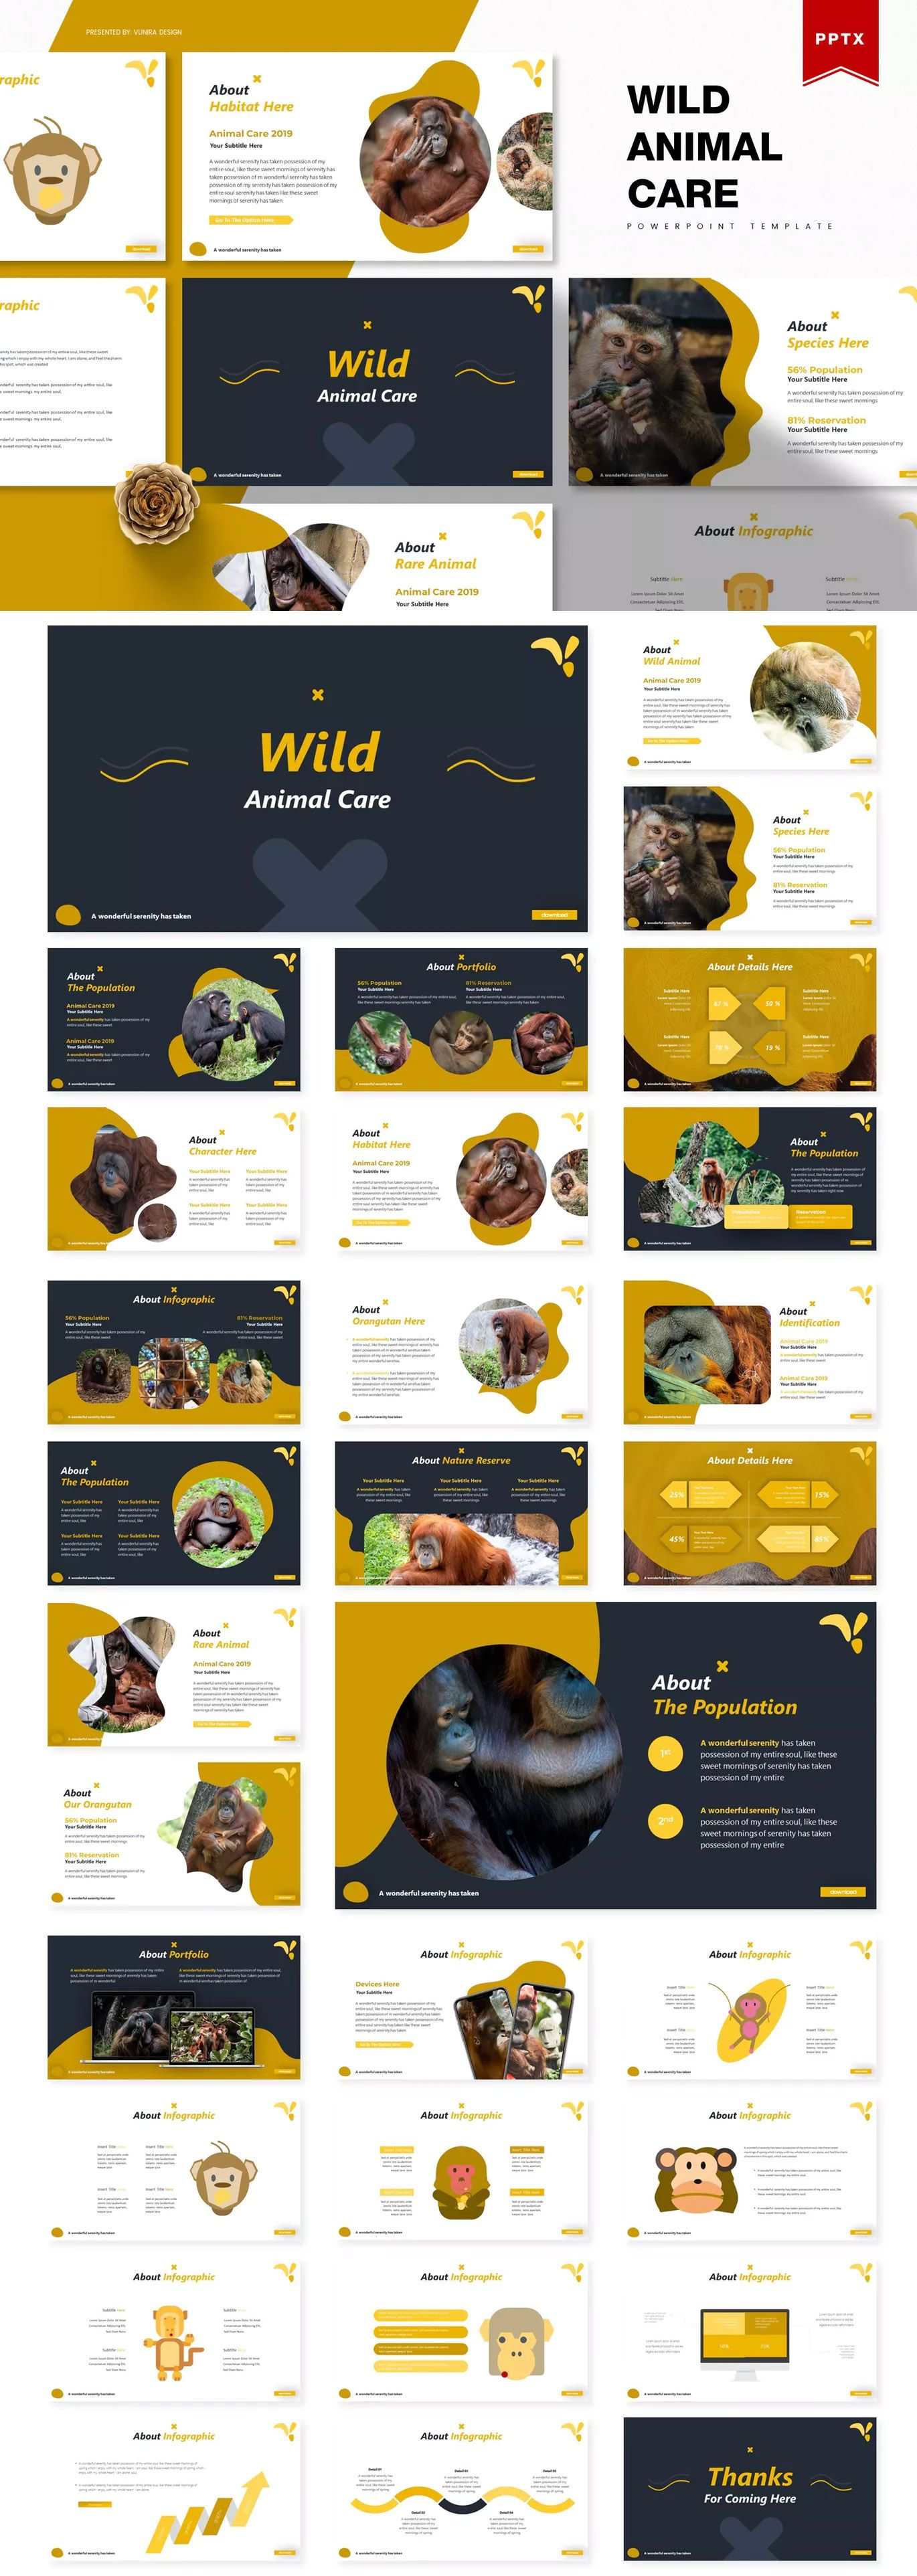 Wild Animal Care Powerpoint Template by Vunira on